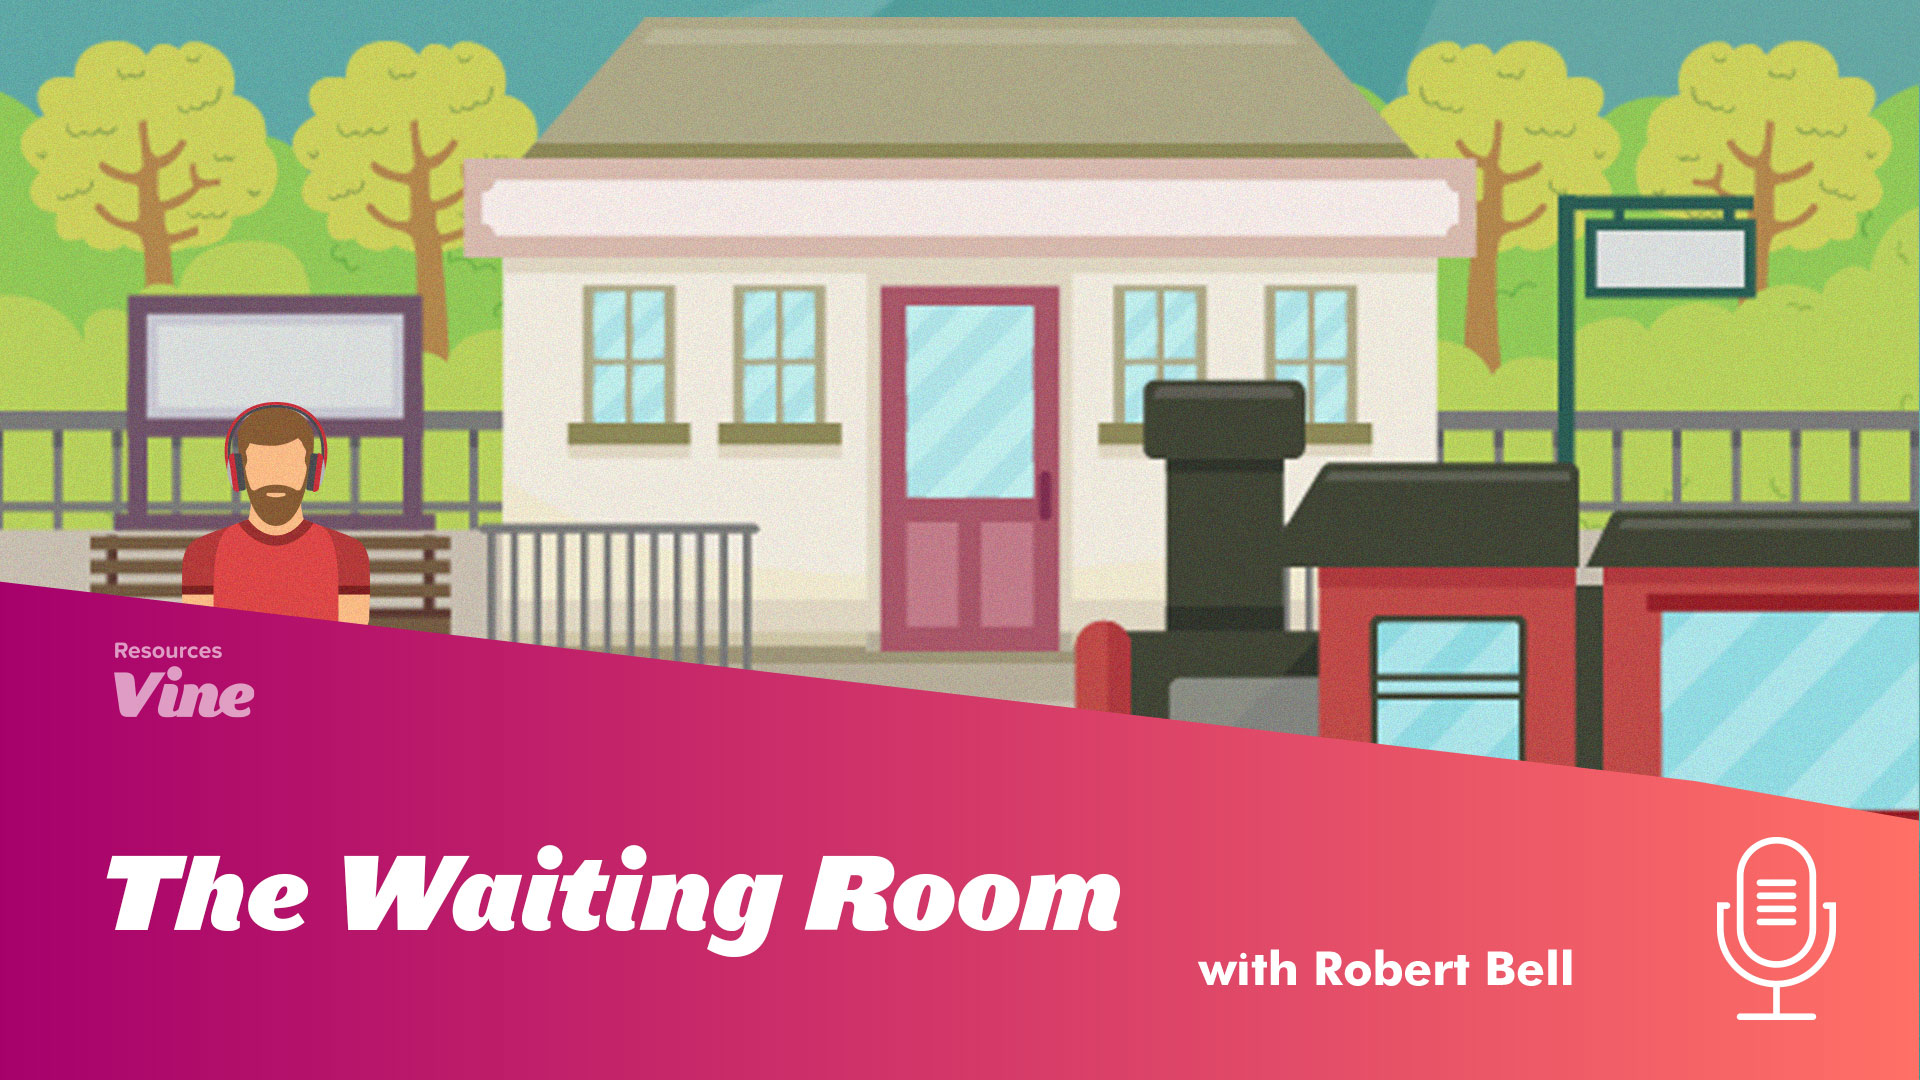 Thumbnail_The_Waiting_Room_RBell